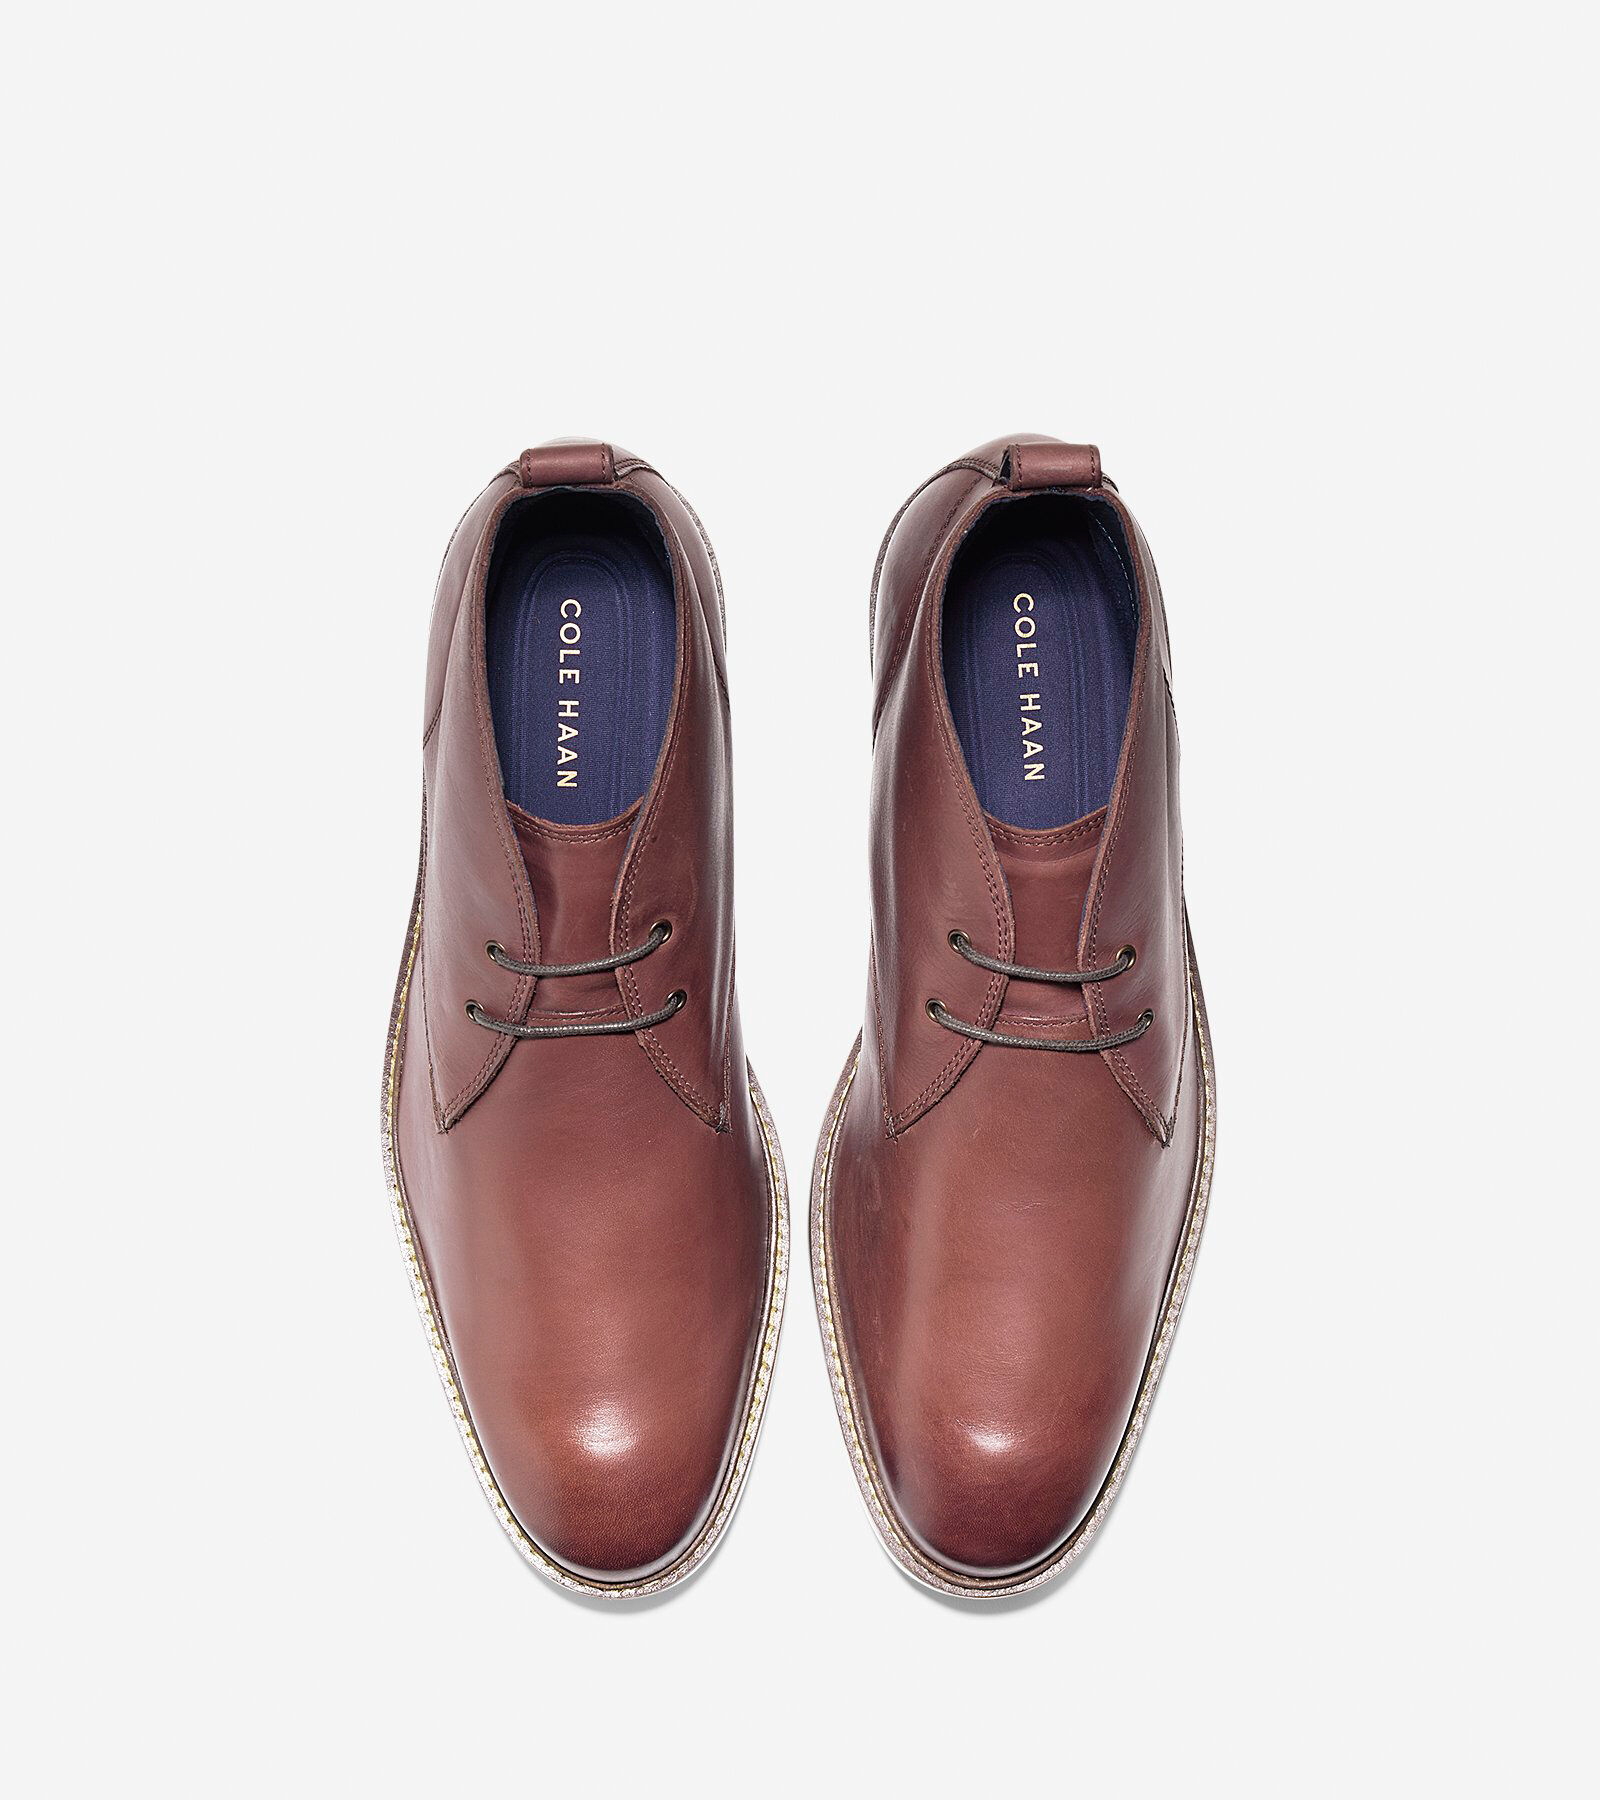 Kennedy Grand Chukka; Kennedy Grand Chukka; Kennedy Grand Chukka; Kennedy  Grand Chukka. #colehaan